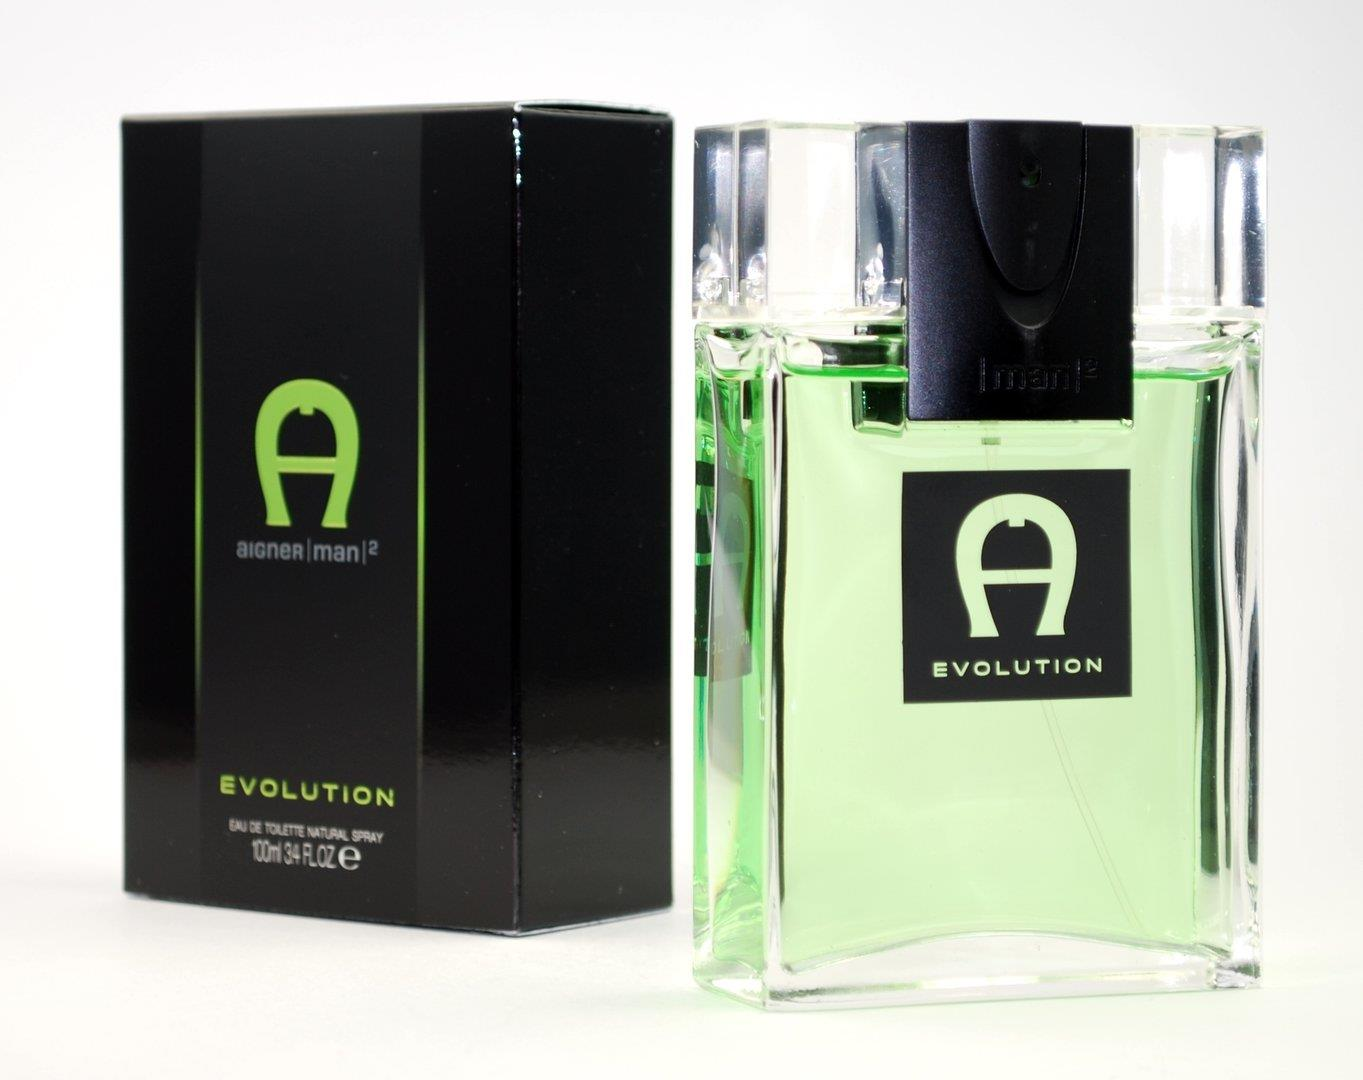 ایگنر ایولوشن-Aigner Man 2 Evolution